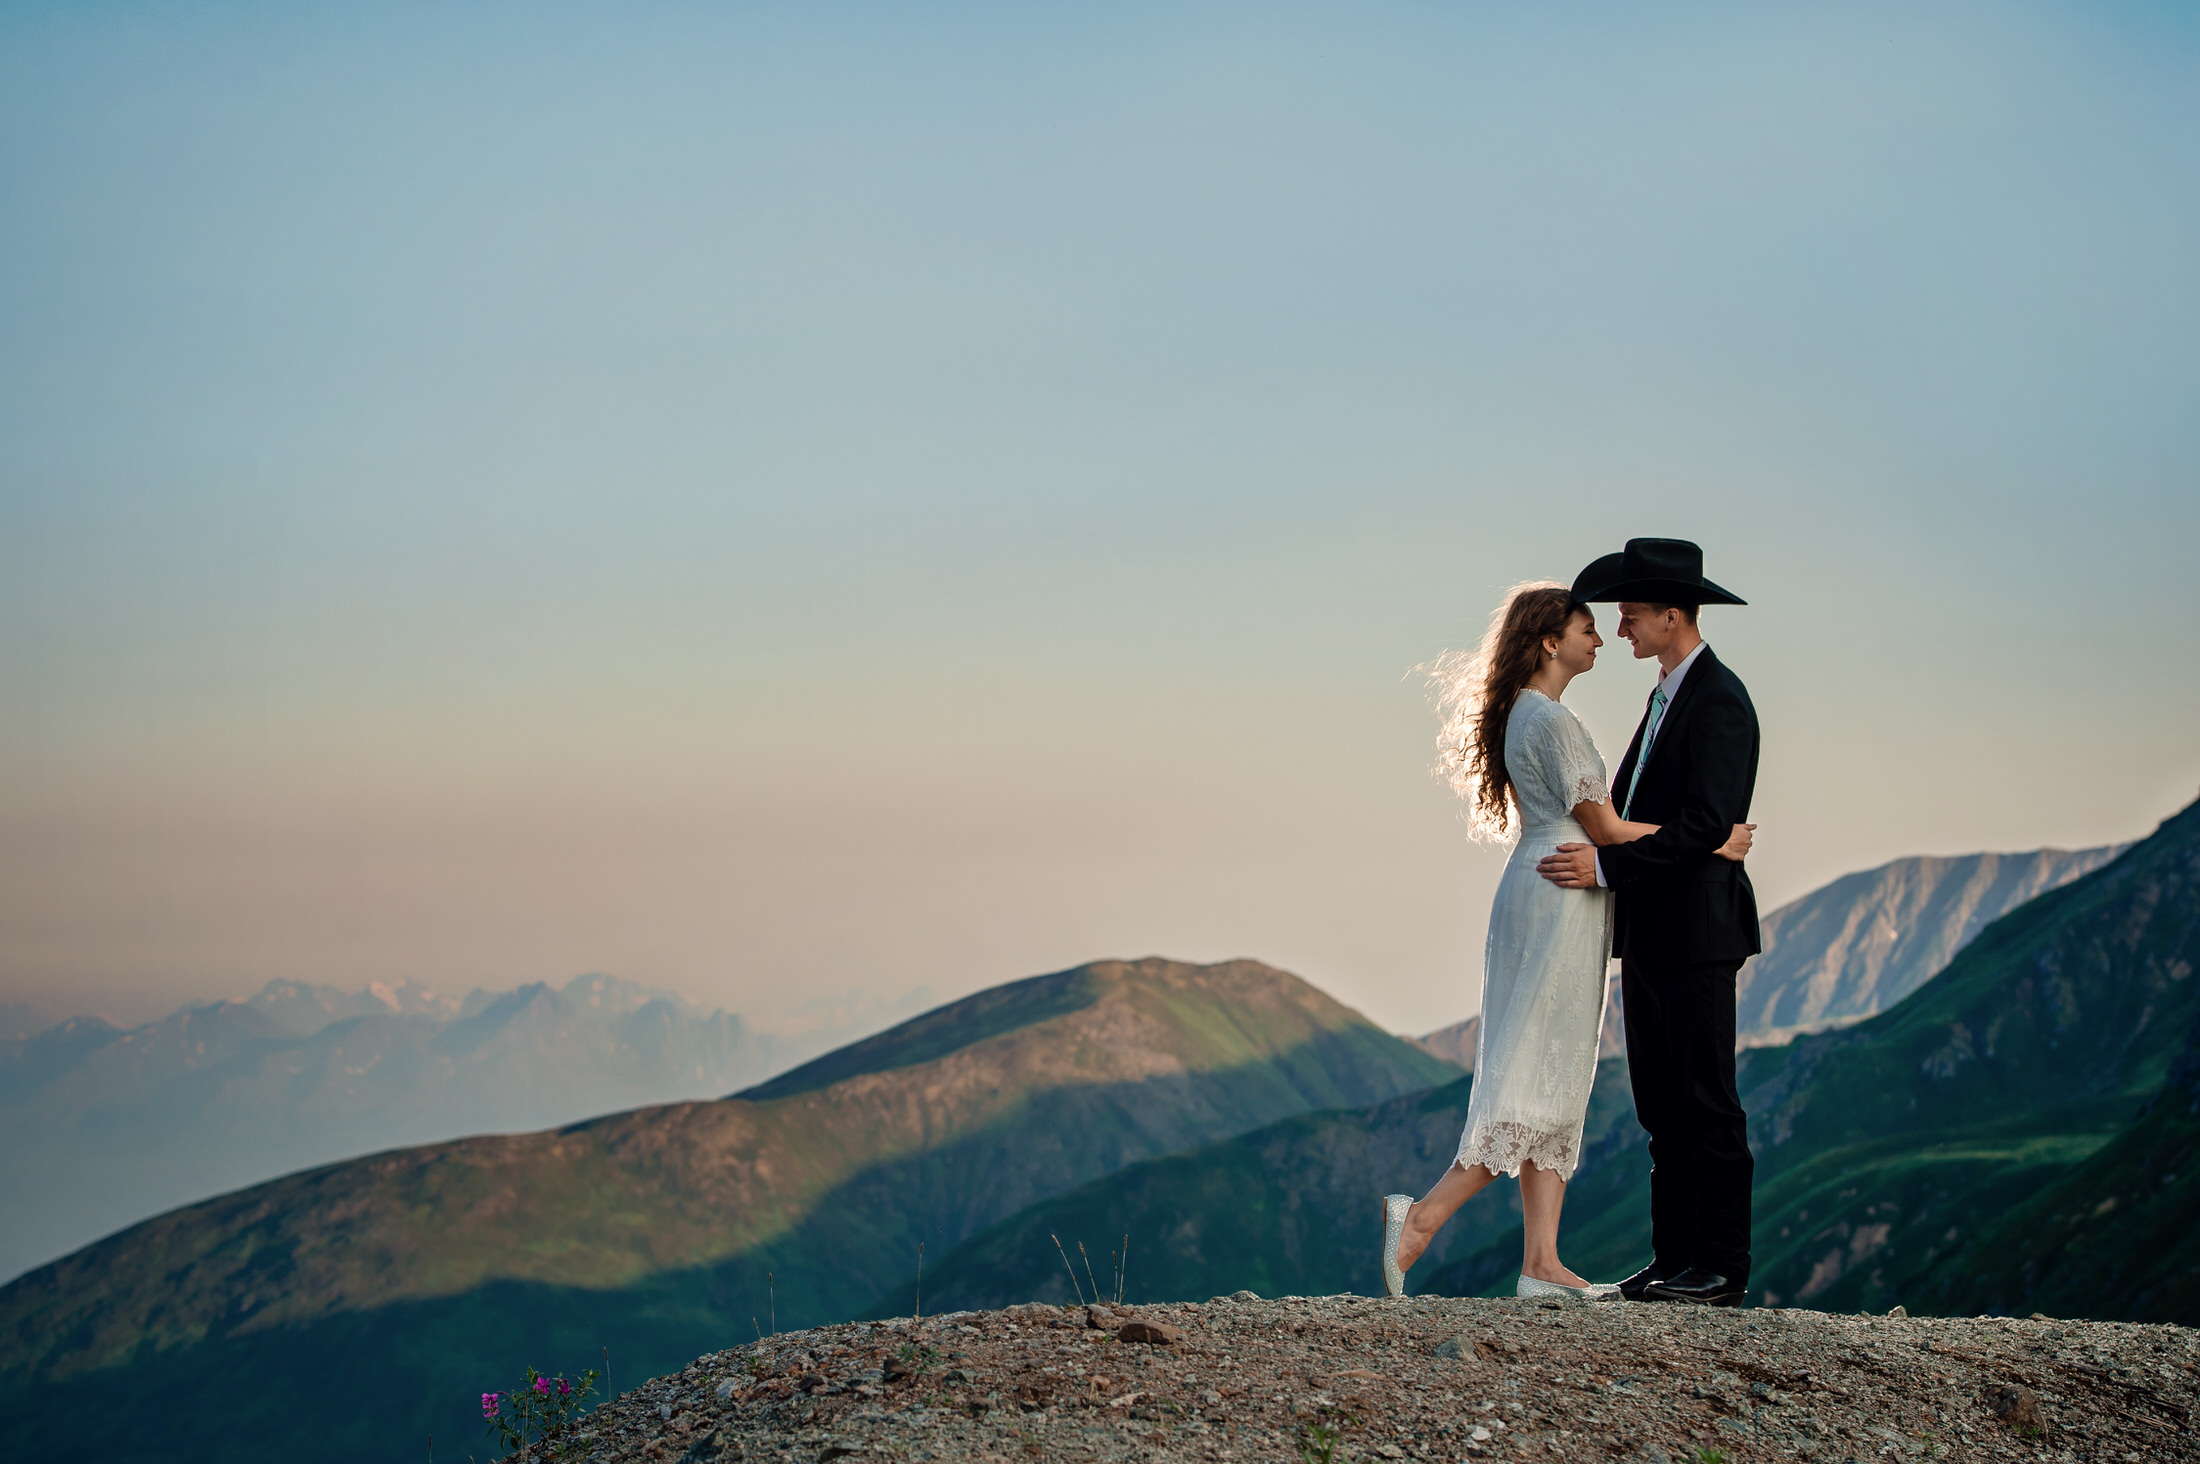 Hatcher pass wedding portraits